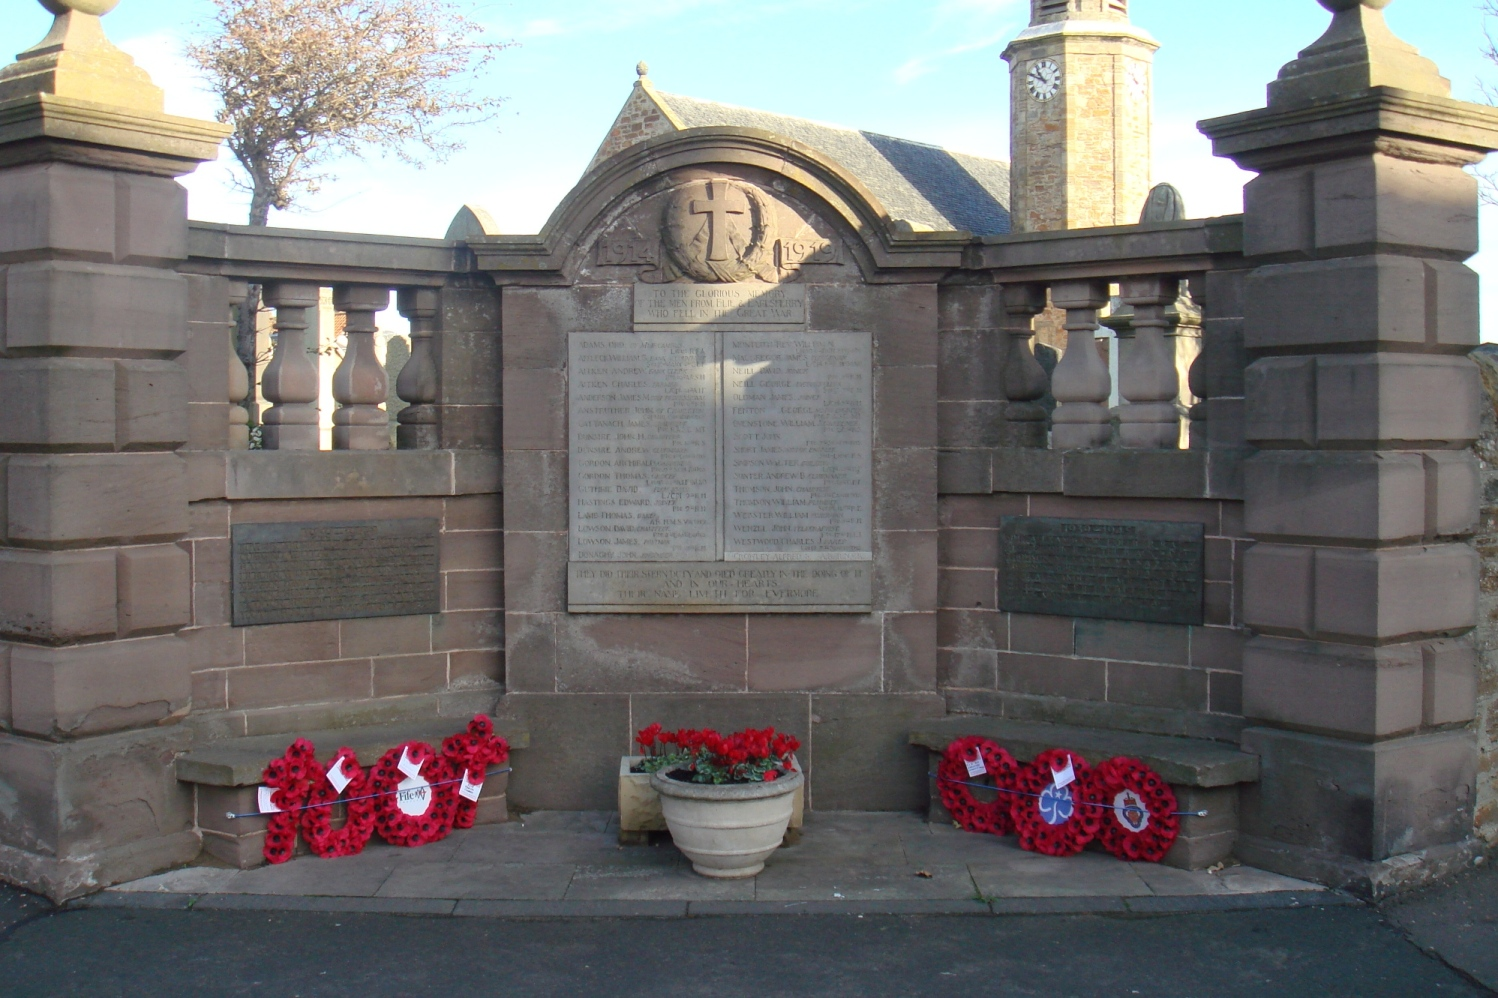 Elie War Memorial. Fife. Scotland